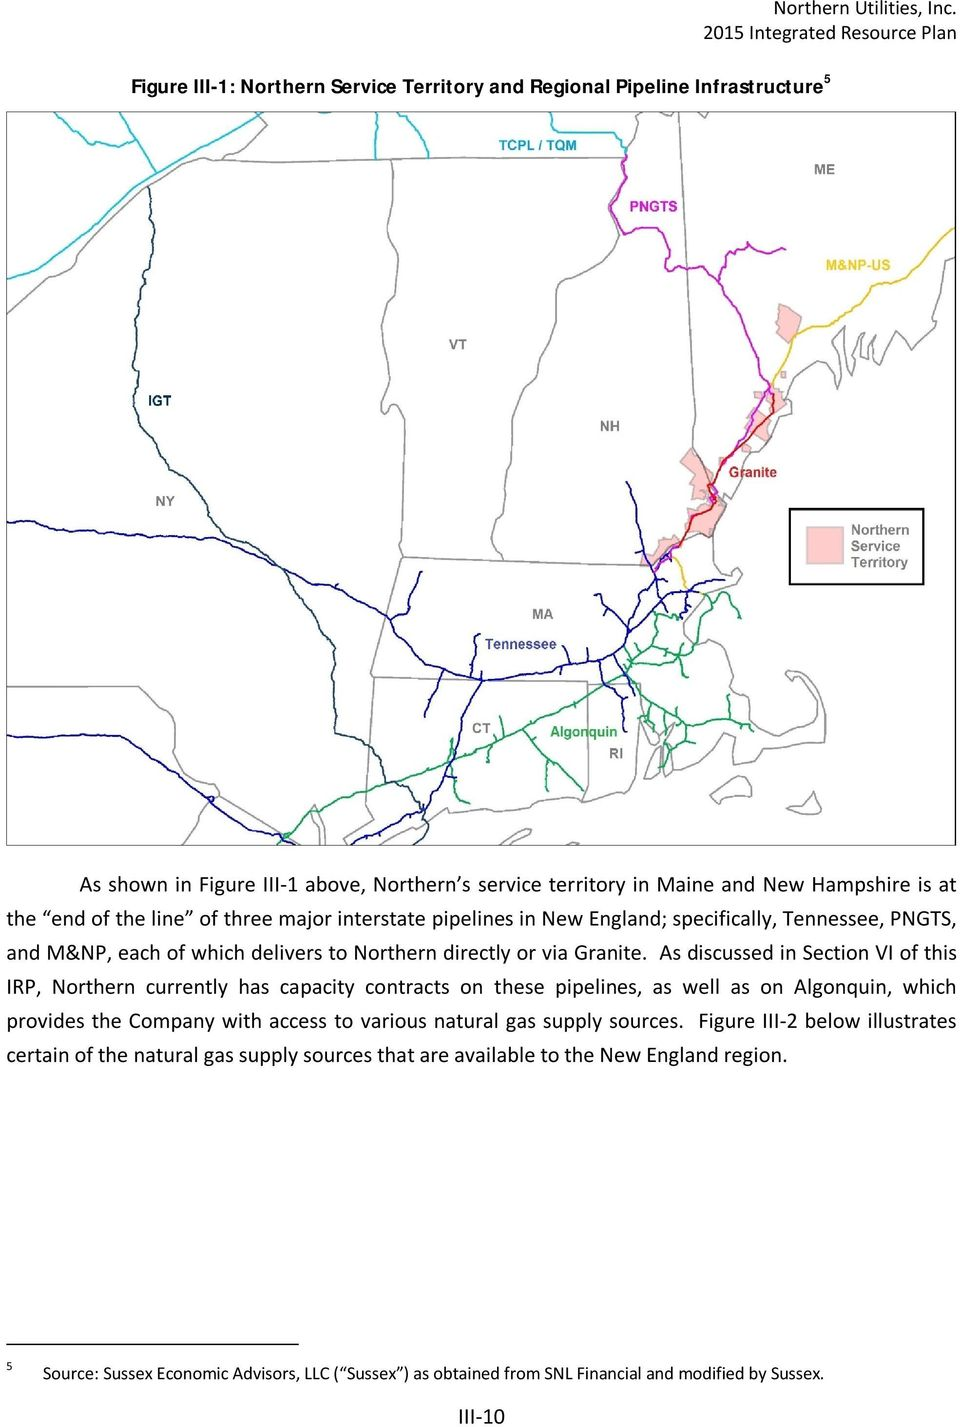 As discussed in Section VI of this IRP, Northern currently has capacity contracts on these pipelines, as well as on Algonquin, which provides the Company with access to various natural gas supply